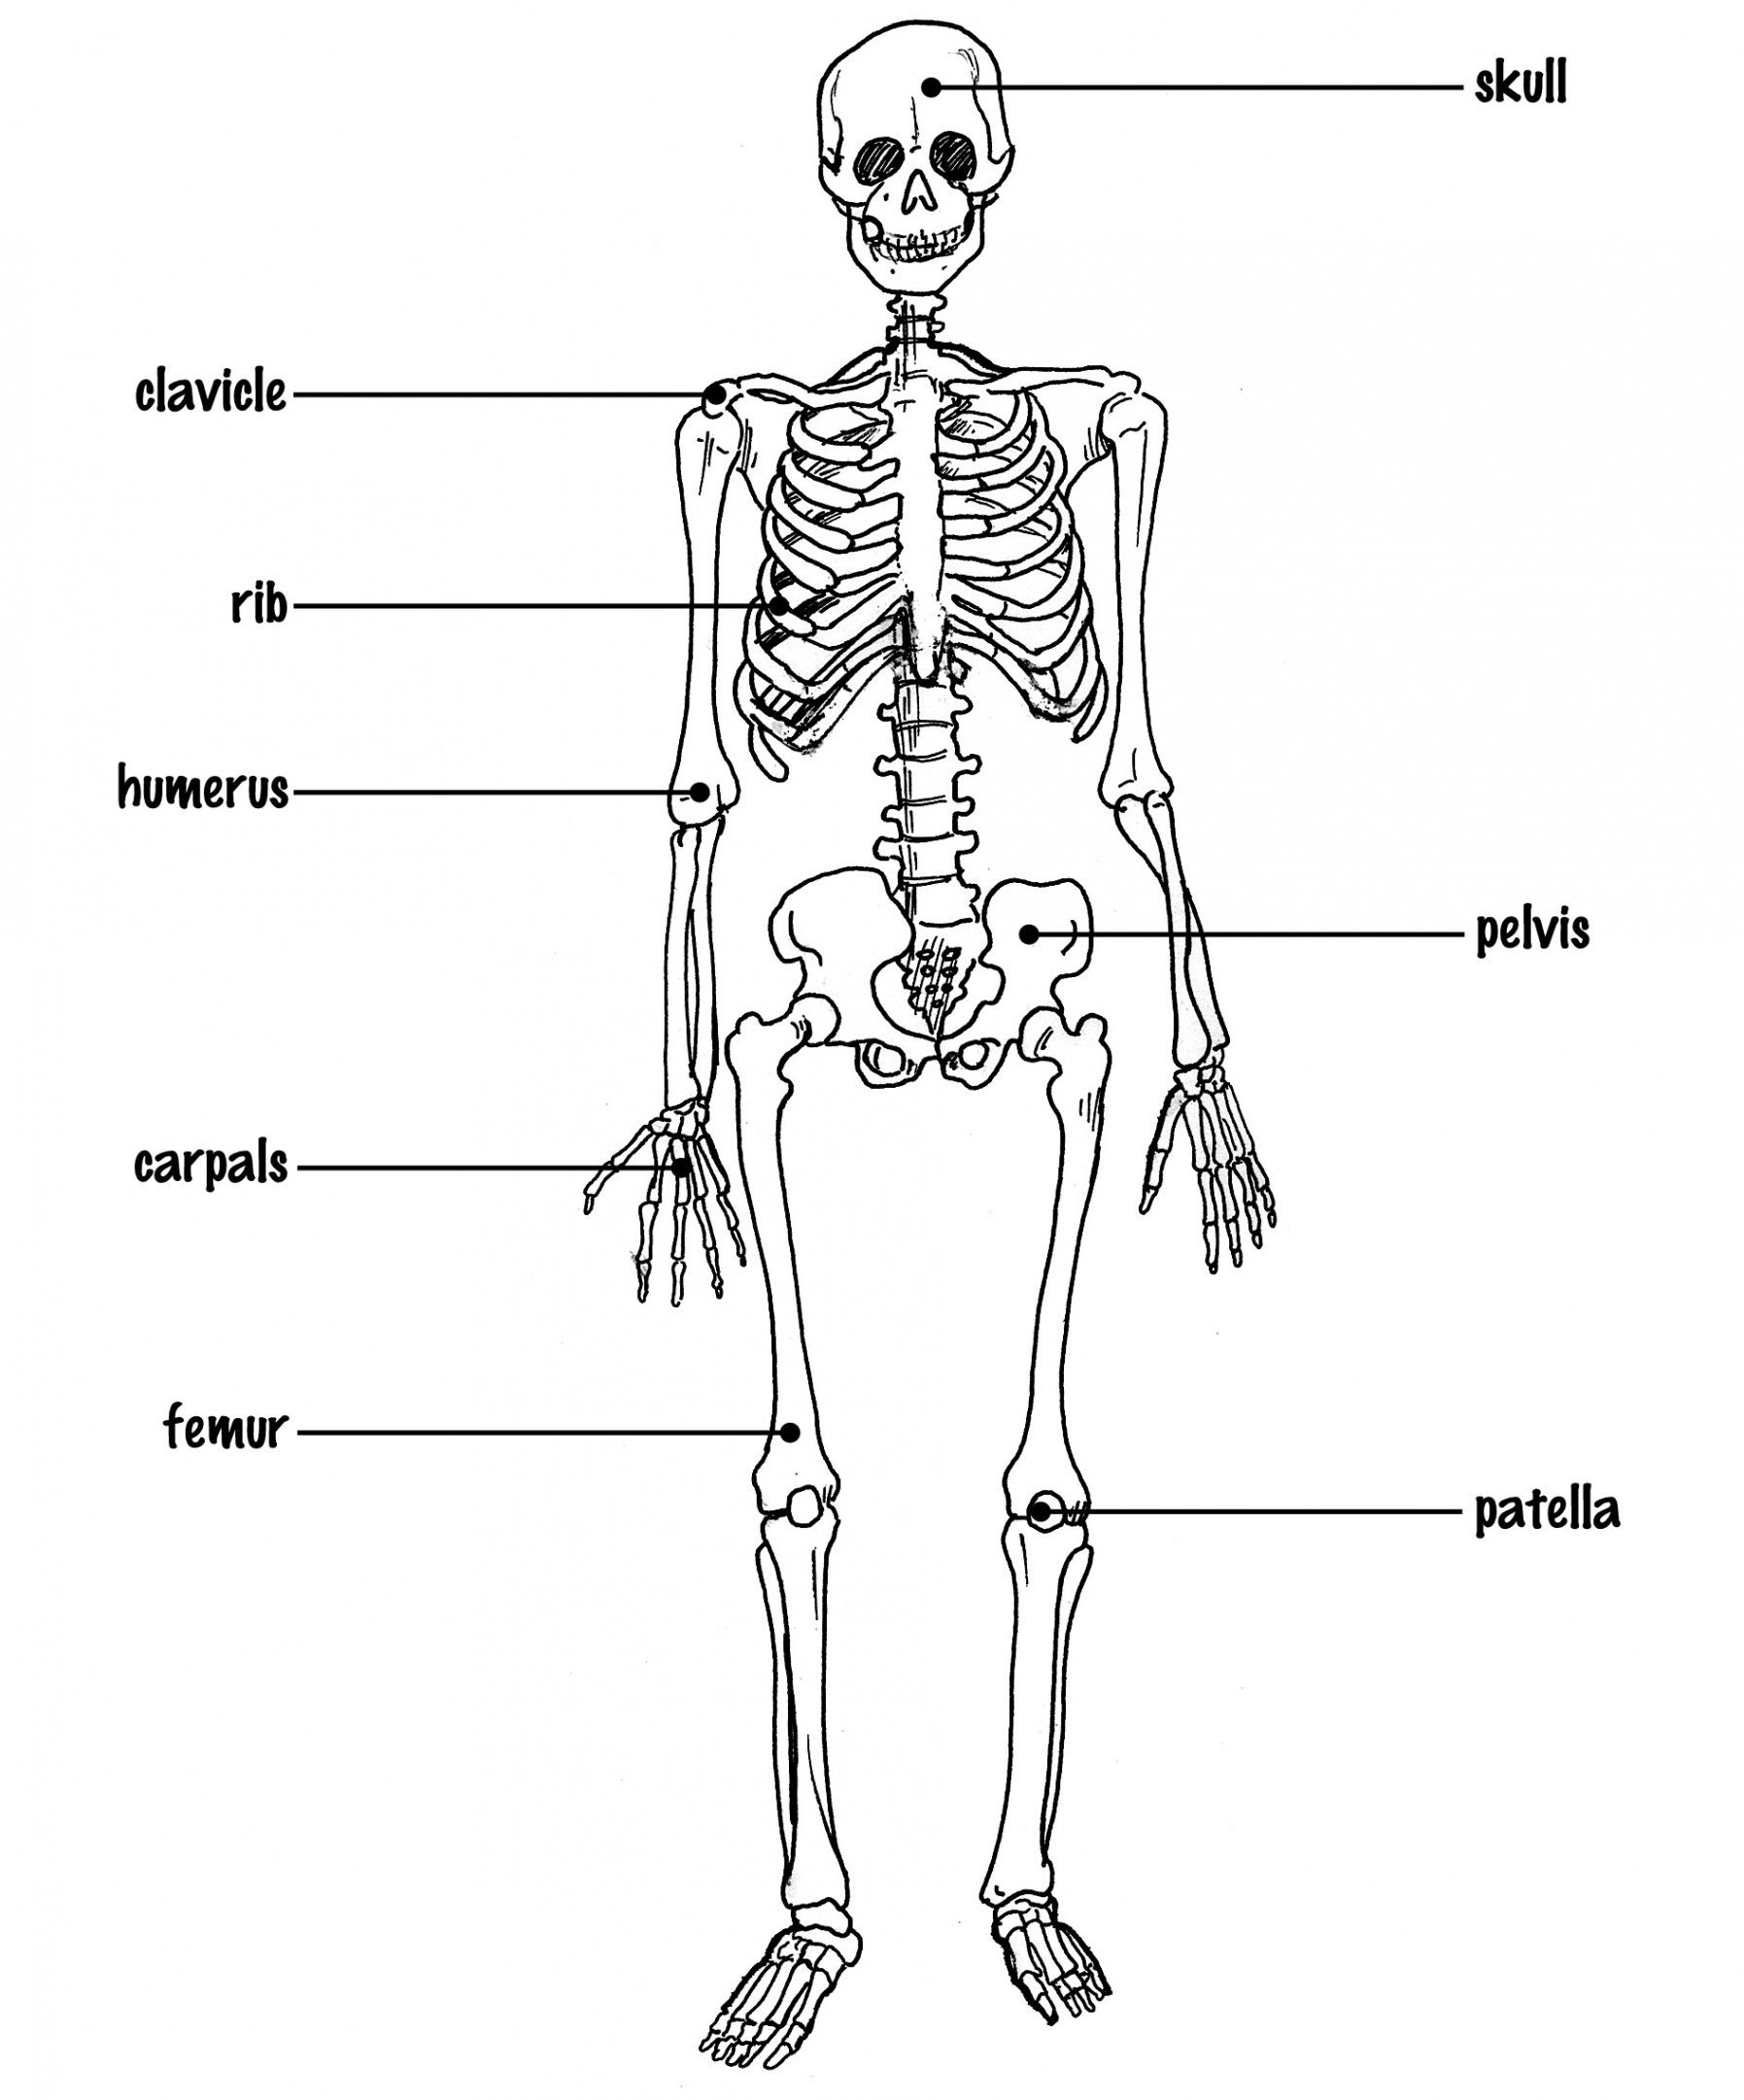 small resolution of unlabeled human skeleton diagram unlabeled human skeleton diagram blank human skeleton stream the awesome web